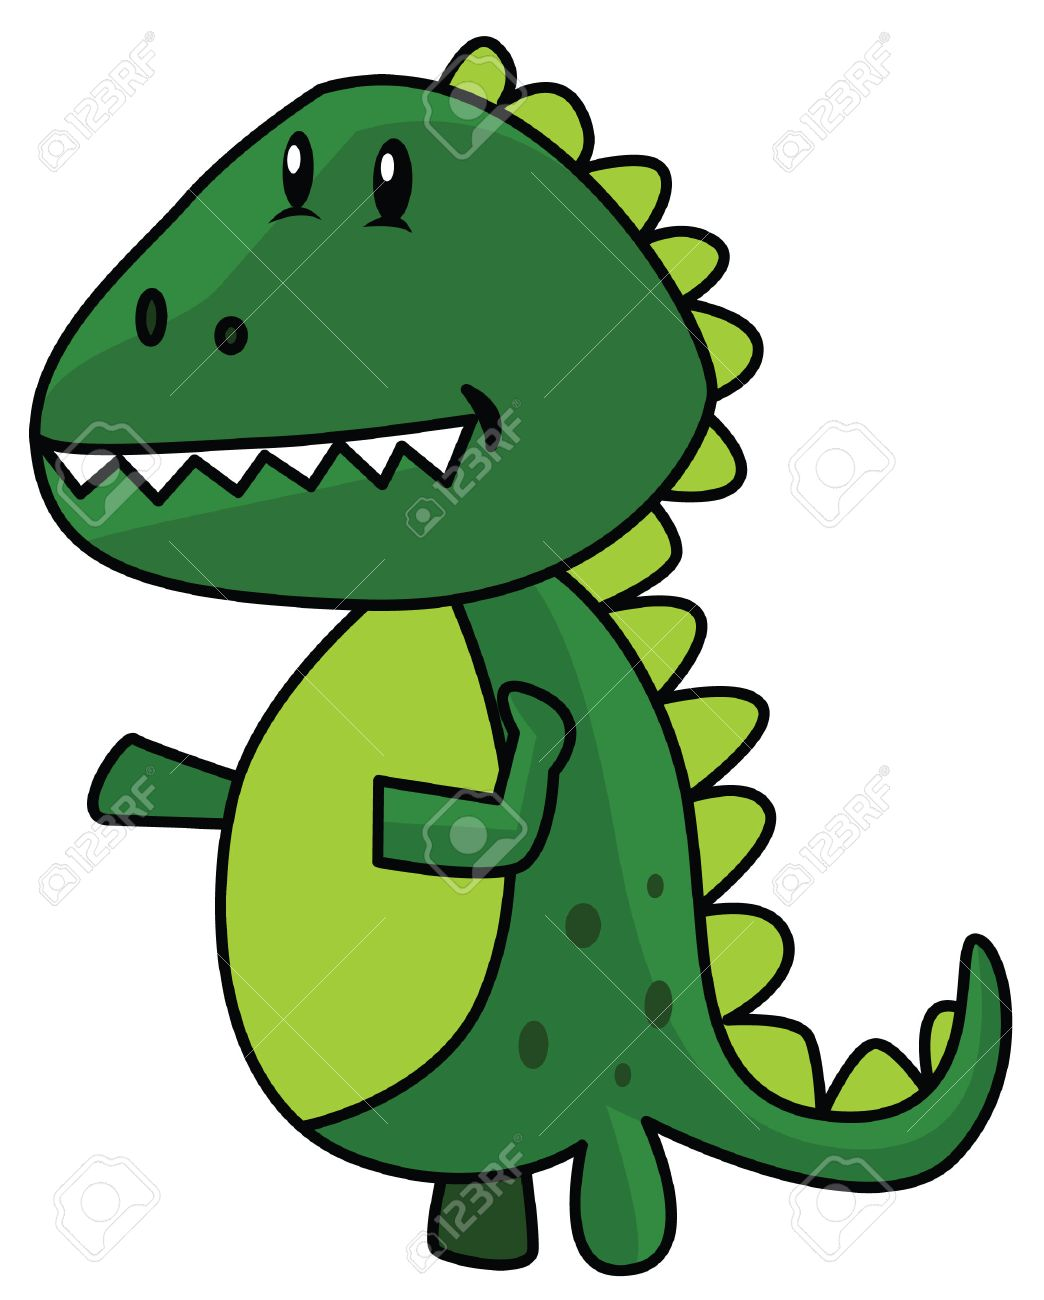 funny clipart of baby dinosaur royalty free cliparts vectors and rh 123rf com funny clip art free images funny clipart for church bulletin